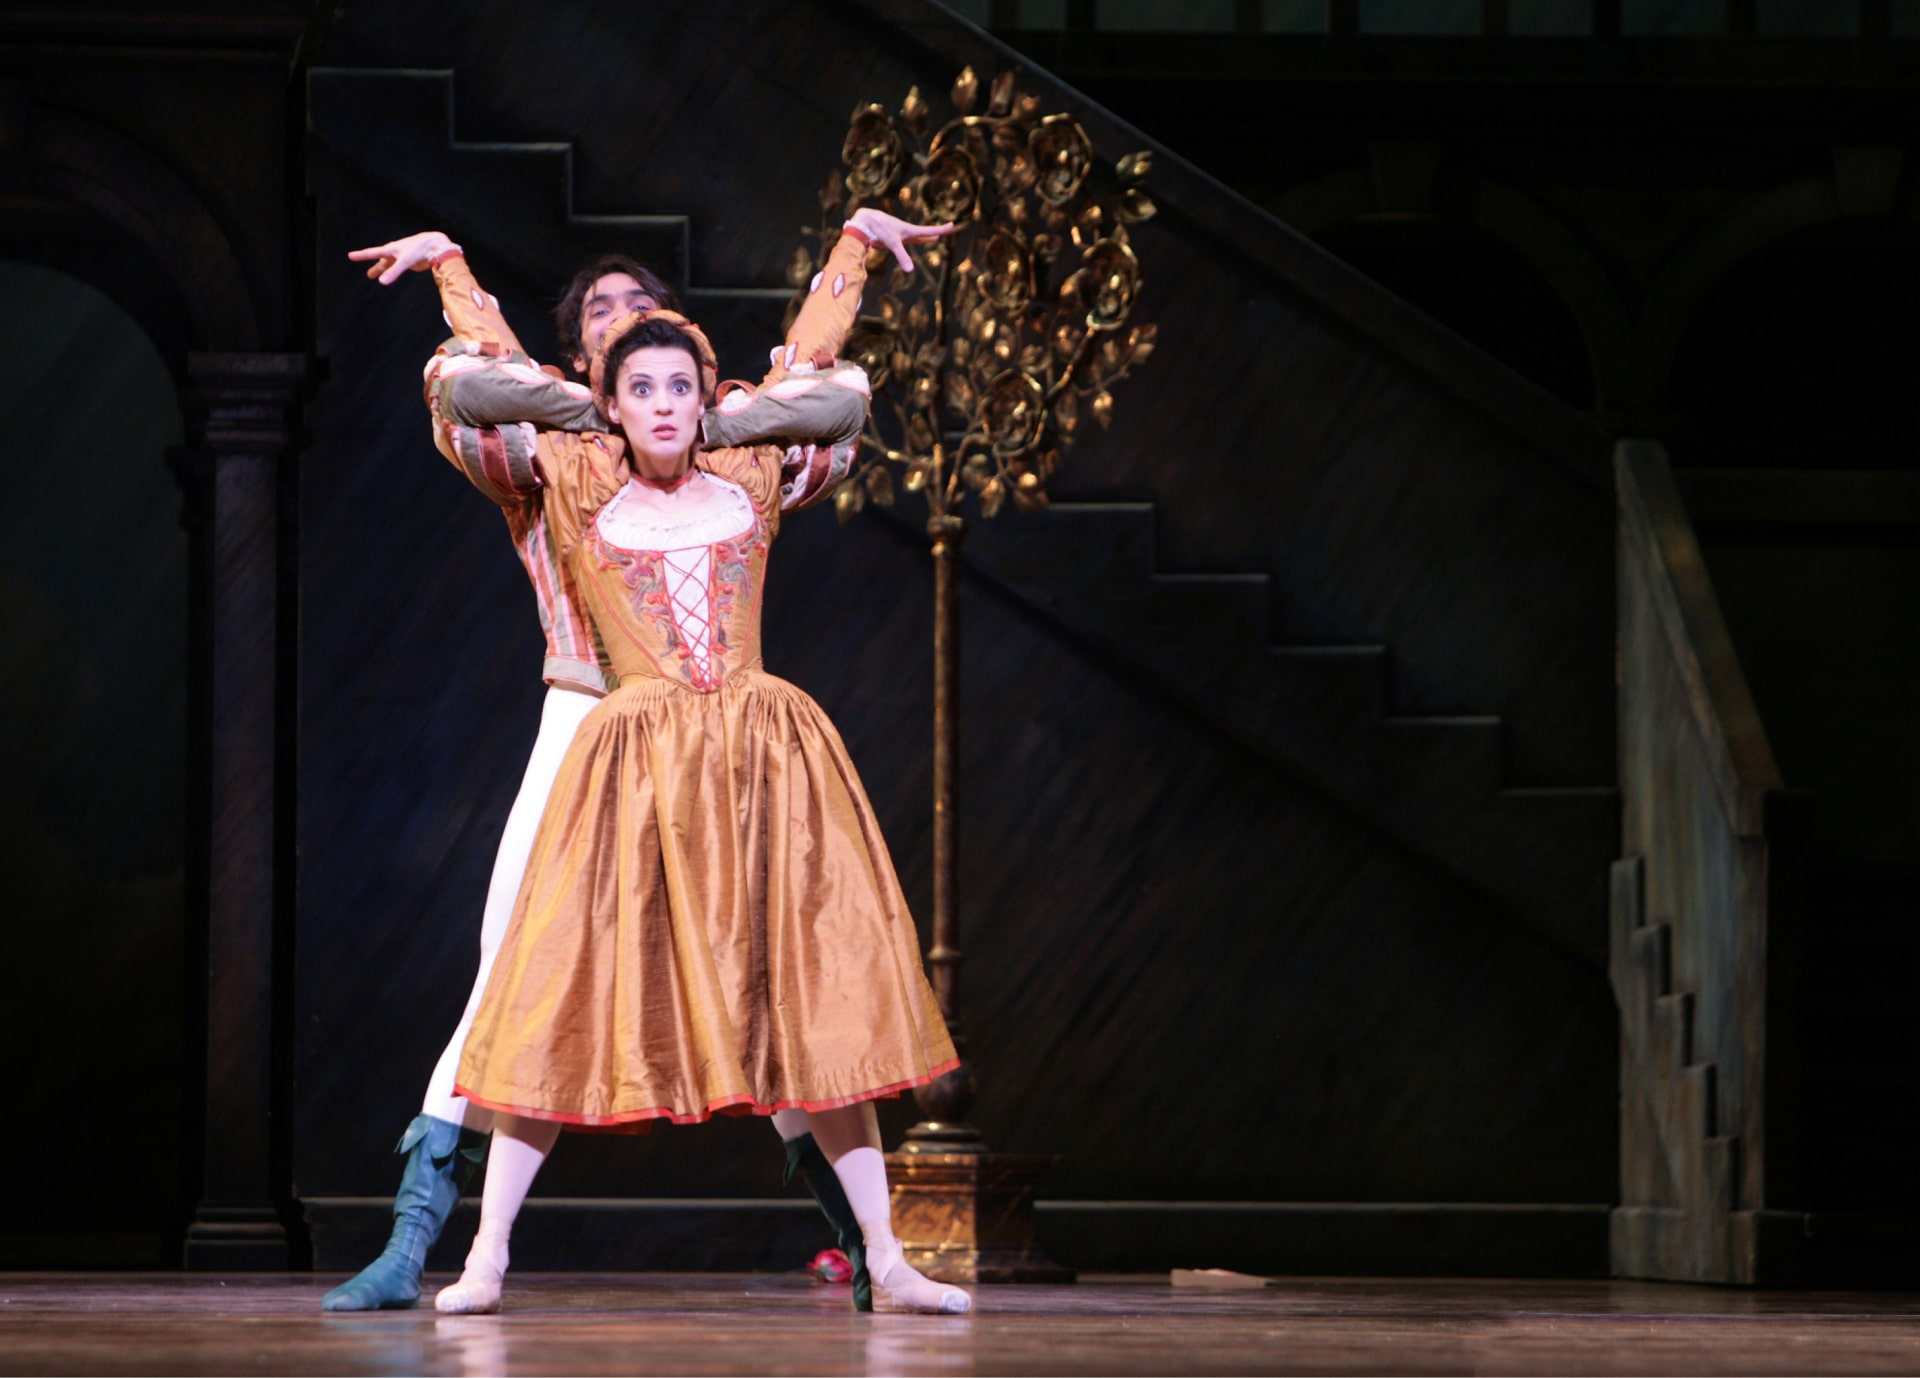 Ballerina in orange dress is restrained by dancer behind her near gold standing tree and painted staircase.